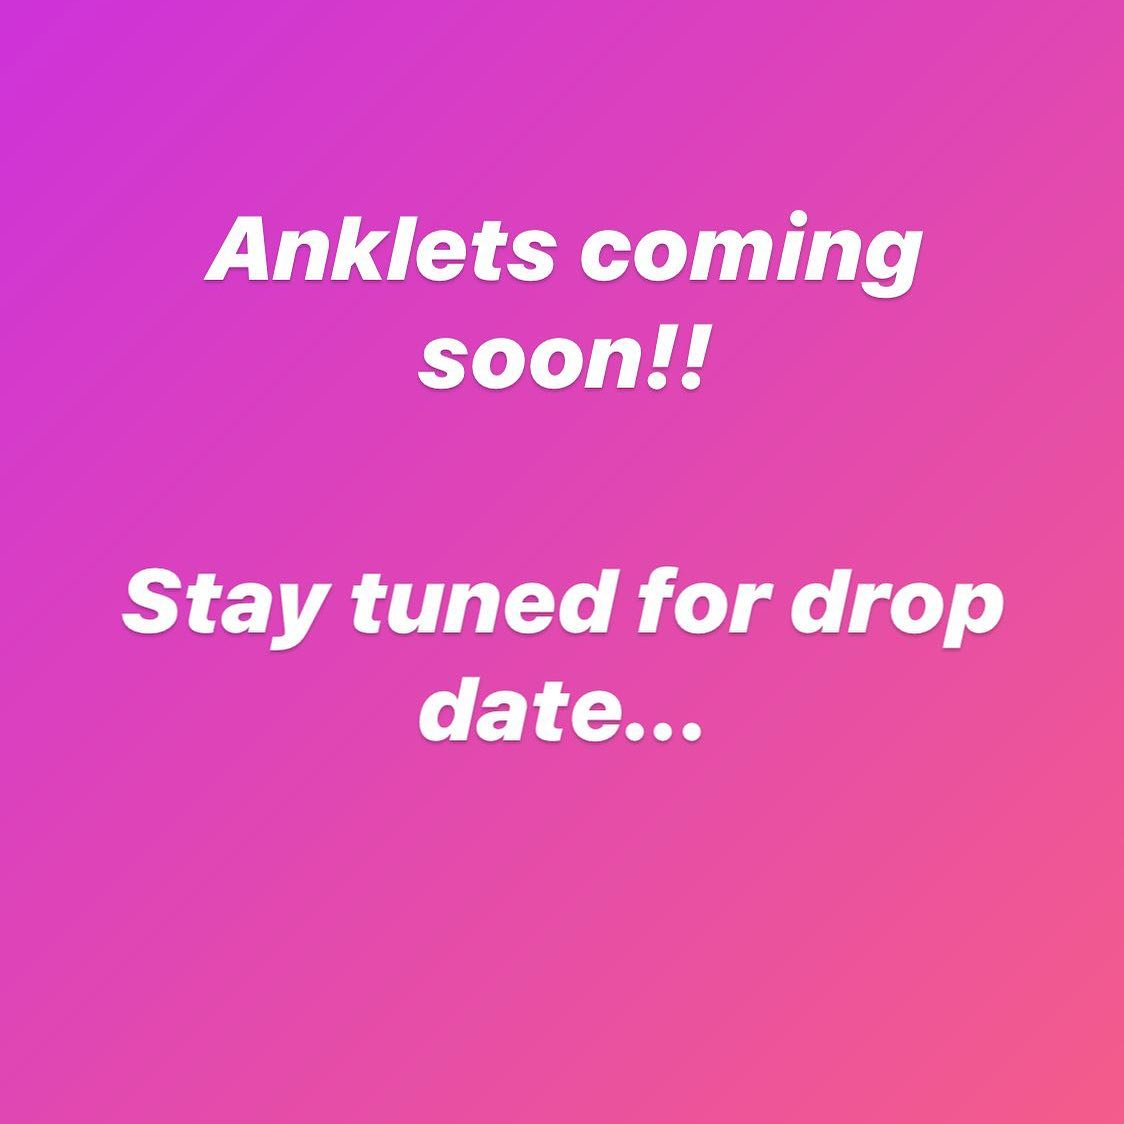 I'm so excited to be adding anklets to the site 😊. I absolutely love them✨✨ drop date coming soon!! . . . . #lavishblujewelry #anklets #springsale #onlinejewelry #onlineshopping #jewelry #jewelrylove...  📸  via